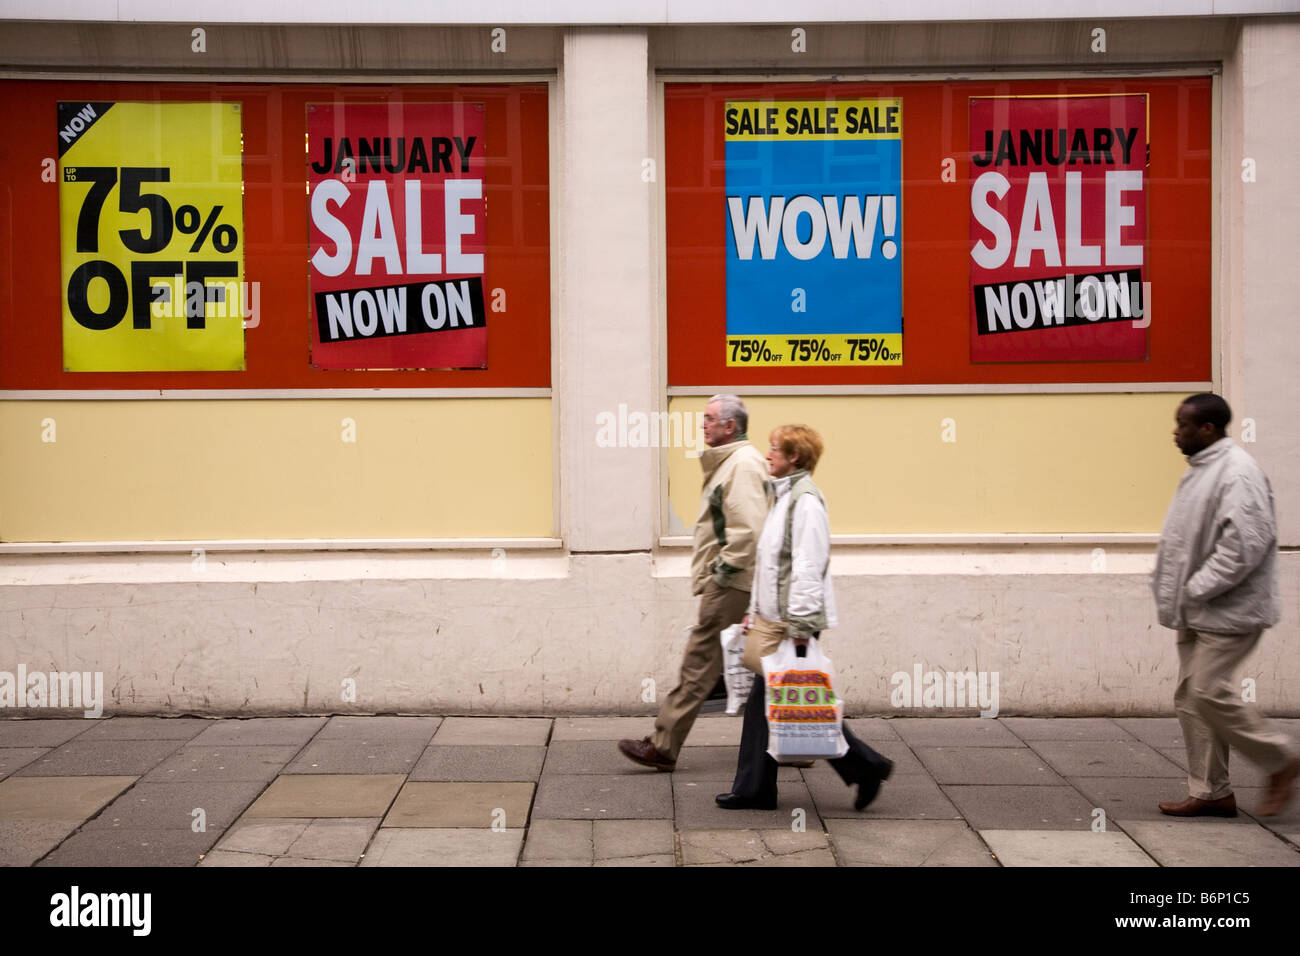 Signs announce the start of the January sales. Shoppers pass by the window. - Stock Image